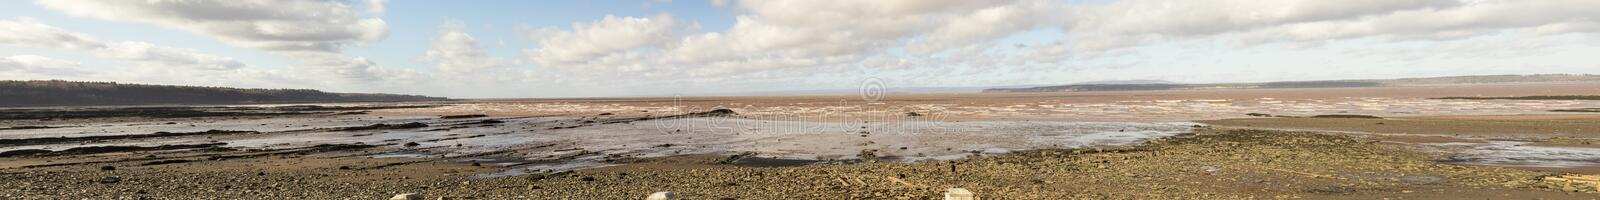 Low tide on Bay of Fundy at Joggins Fossil Cliffs, Nova Scotia, royalty free stock images